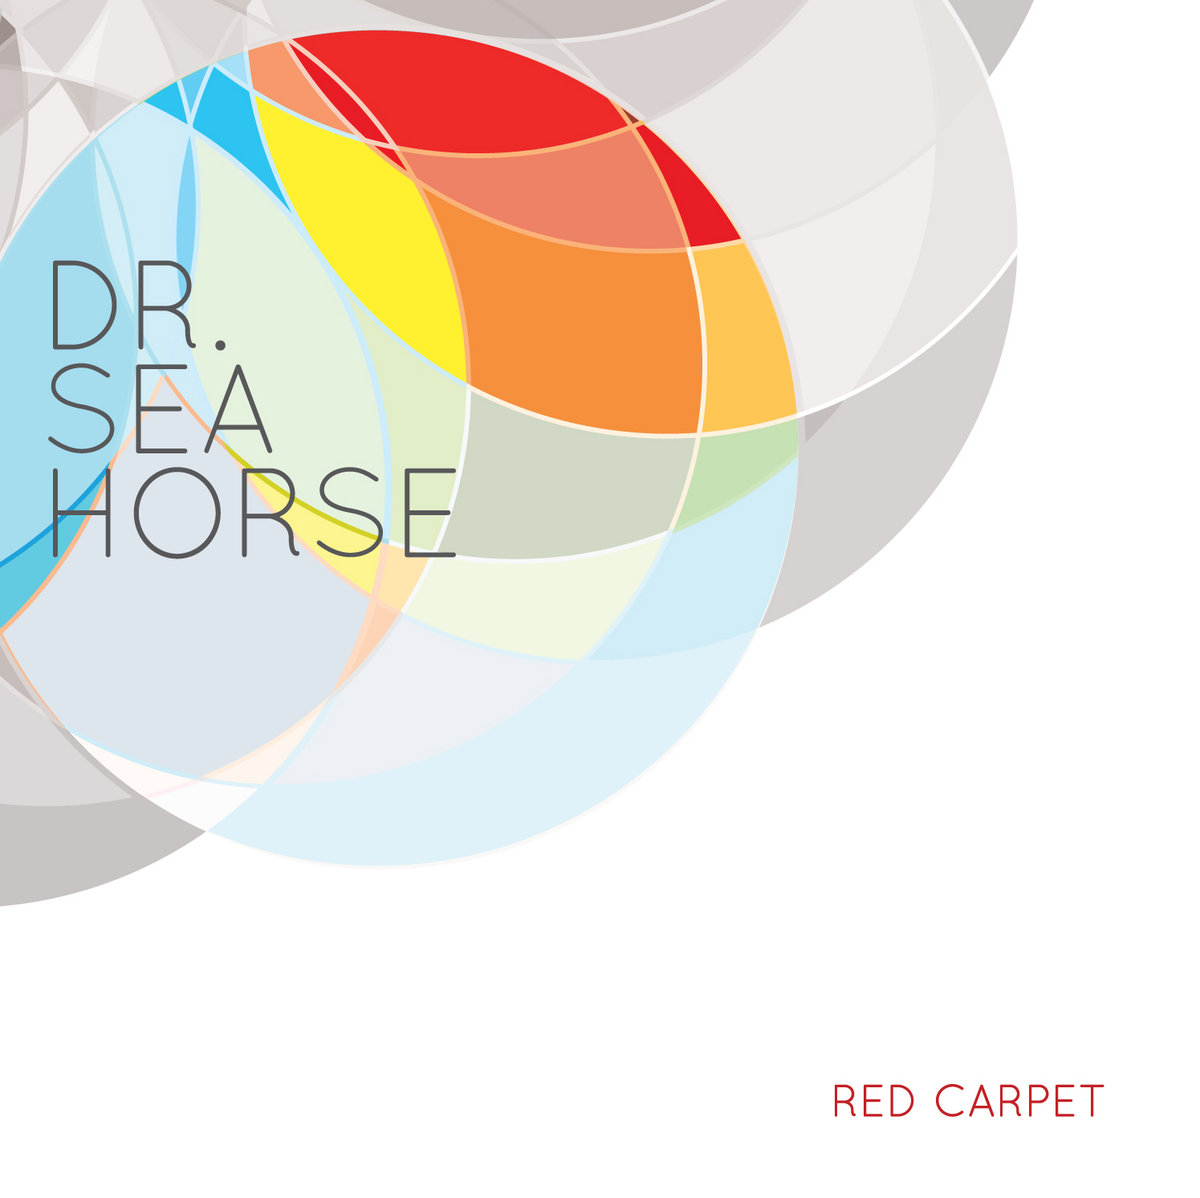 Red carpet dr seahorse by dr seahorse solutioingenieria Image collections